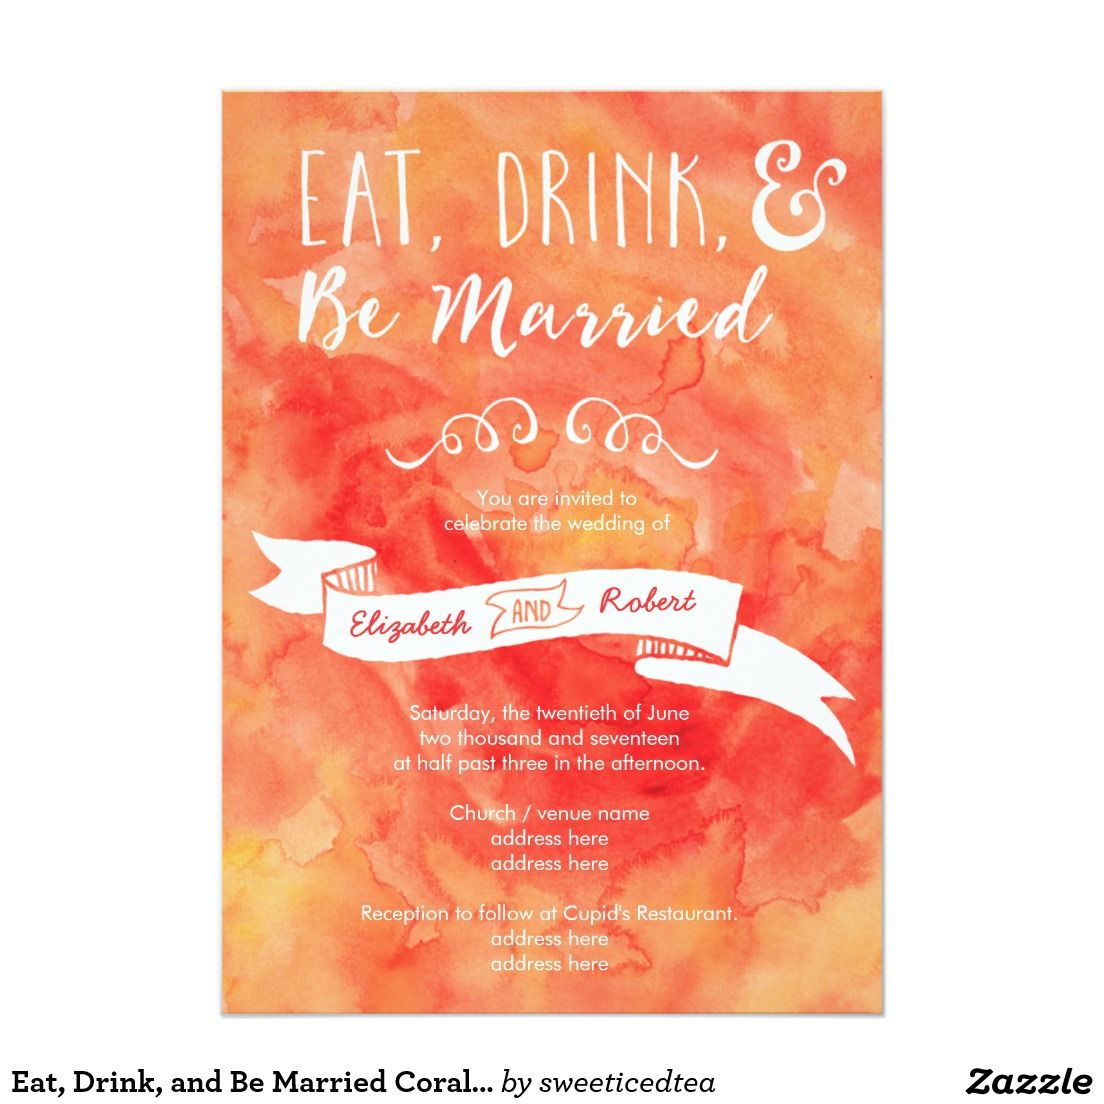 Eat, Drink, and Be Married Coral Wedding Card